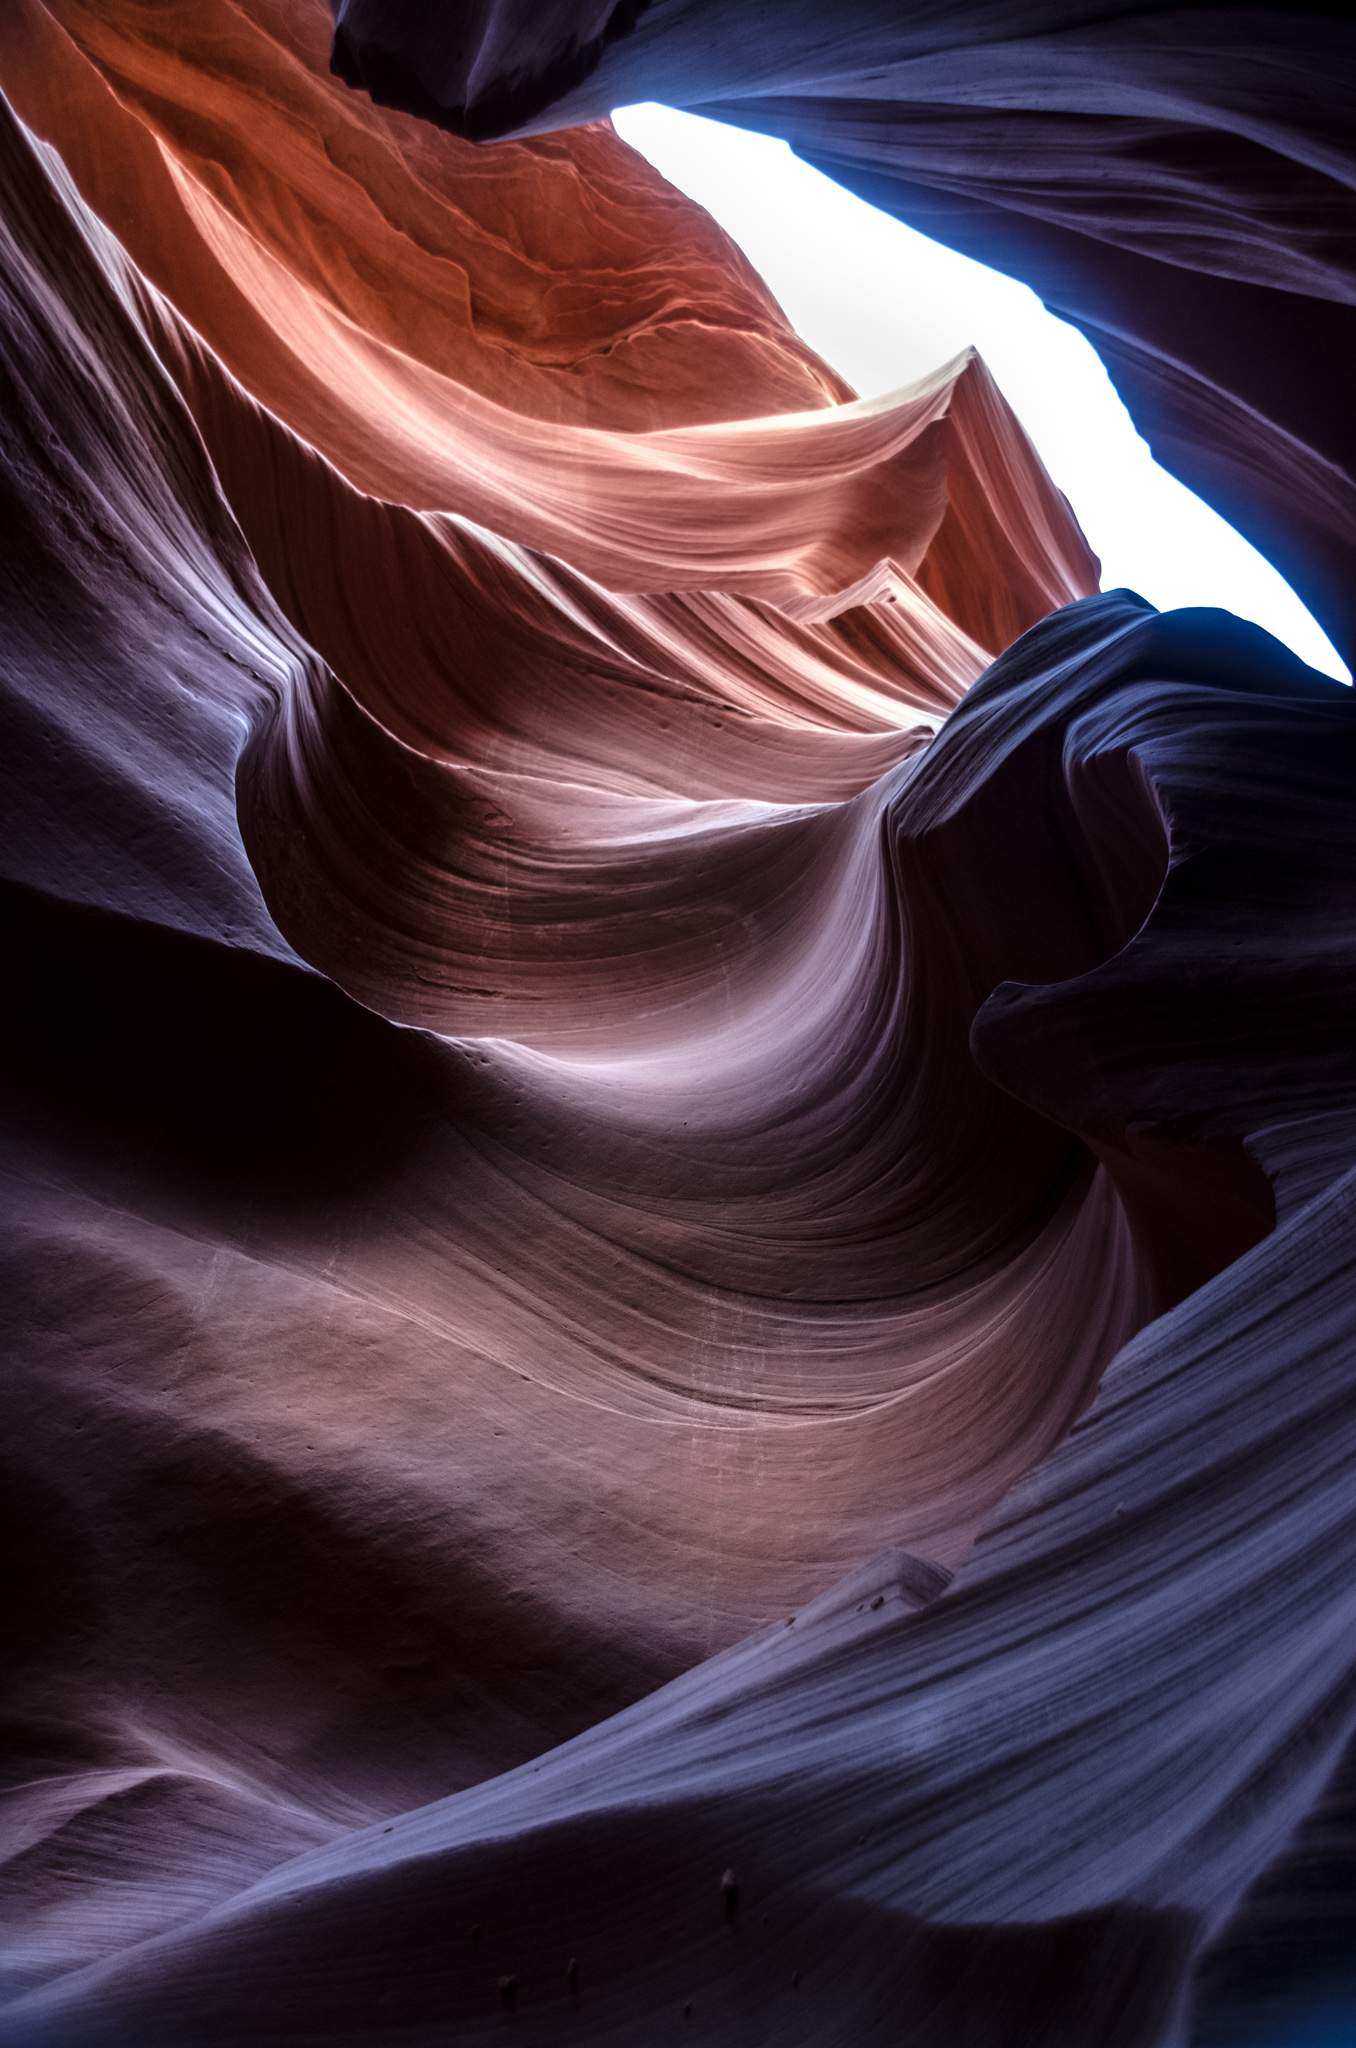 2015-02-21 - Antelope Canyon - 140